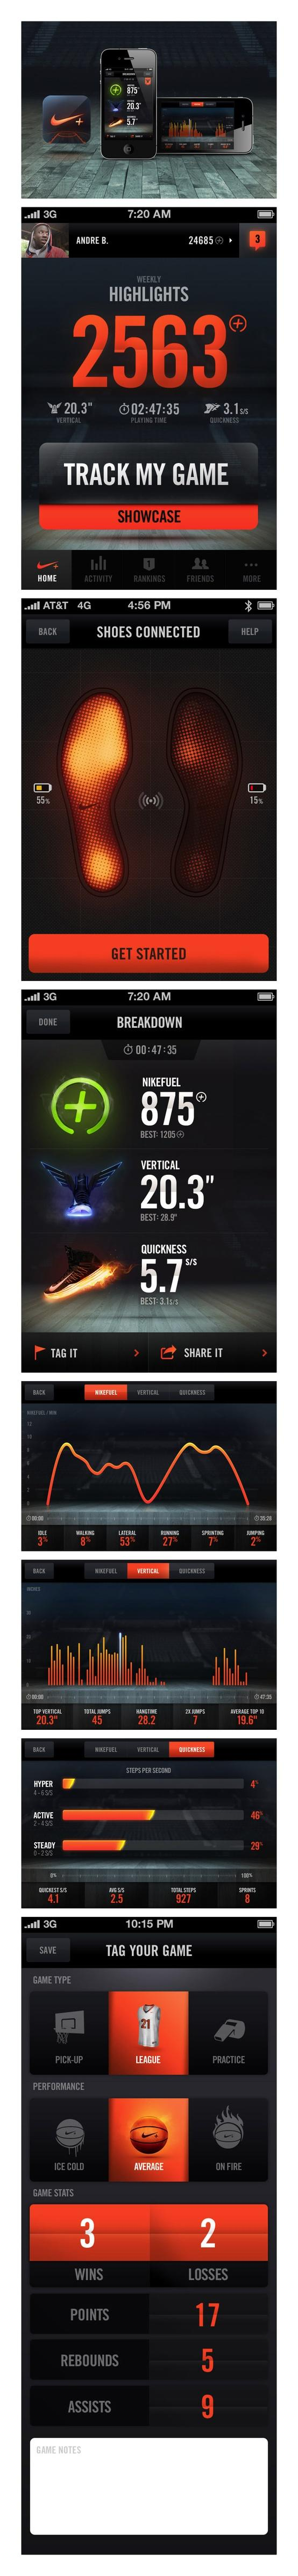 Web/Interactive/UI / Nike+ Basketball by Jordan Fripp